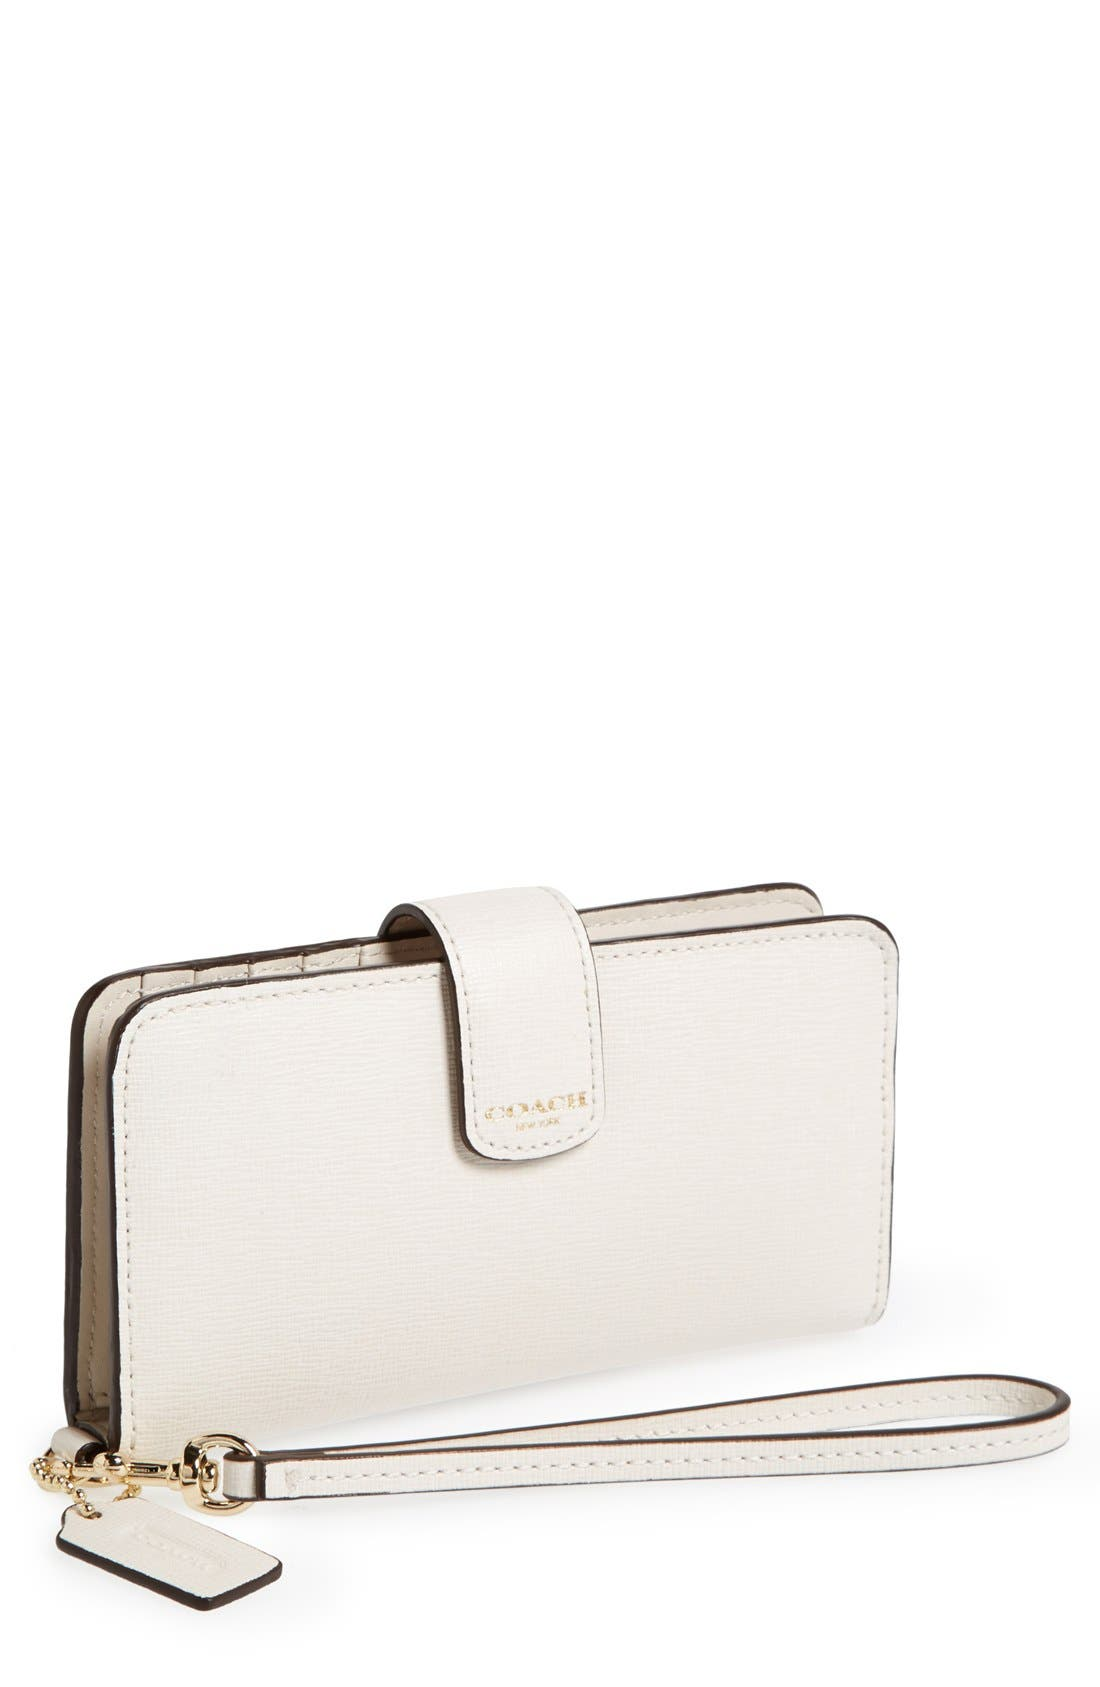 Main Image - COACH Saffiano Leather Phone Wallet